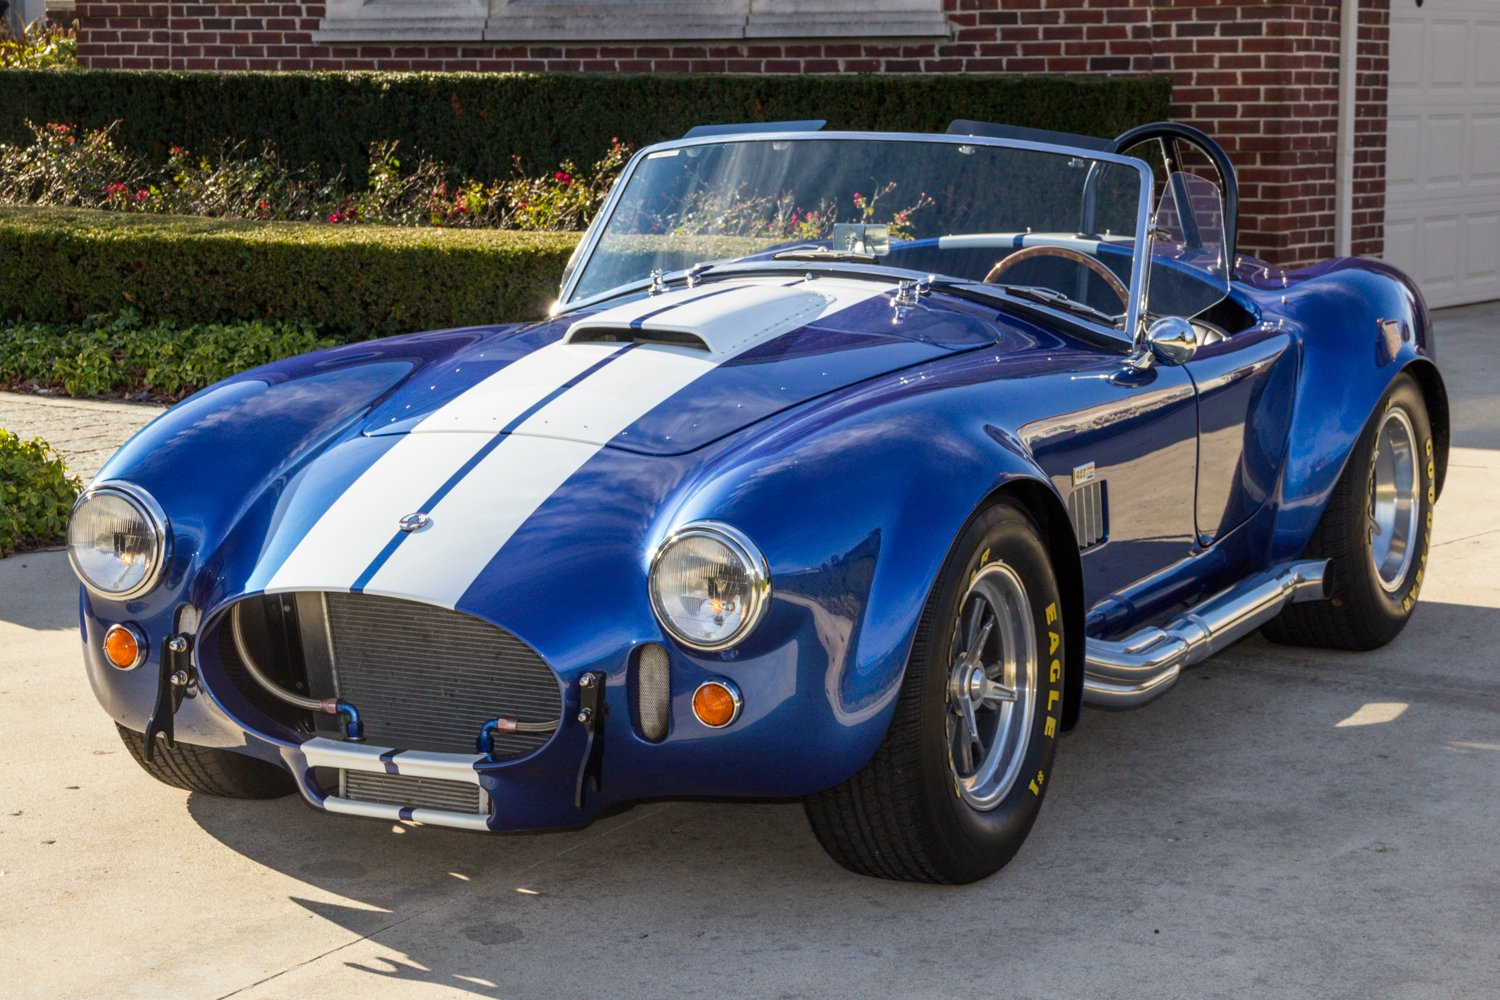 Vanguard Motor Wiring Diagram Simple 1965 Shelby Cobra Classic Cars For Sale Michigan Muscle Old Bs